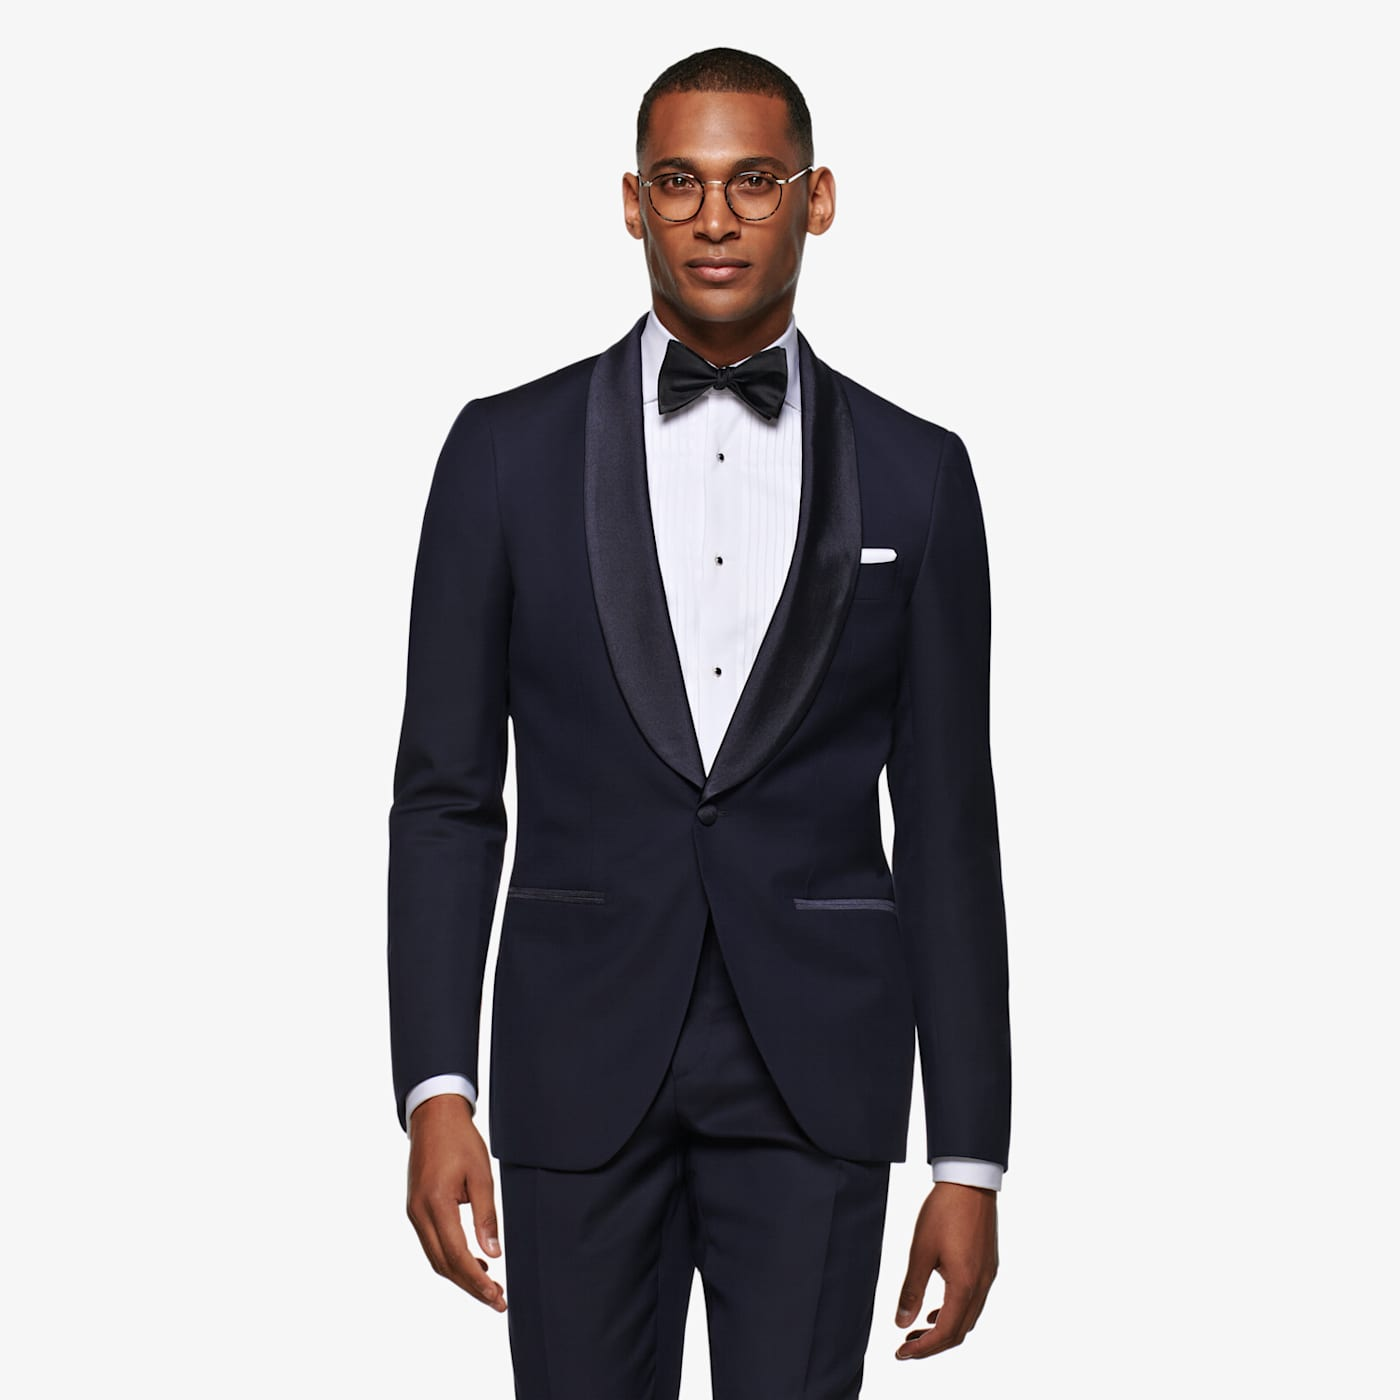 New Vintage Tuxedos, Tailcoats, Morning Suits, Dinner Jackets Navy Havana Tuxedo Suit $599.00 AT vintagedancer.com